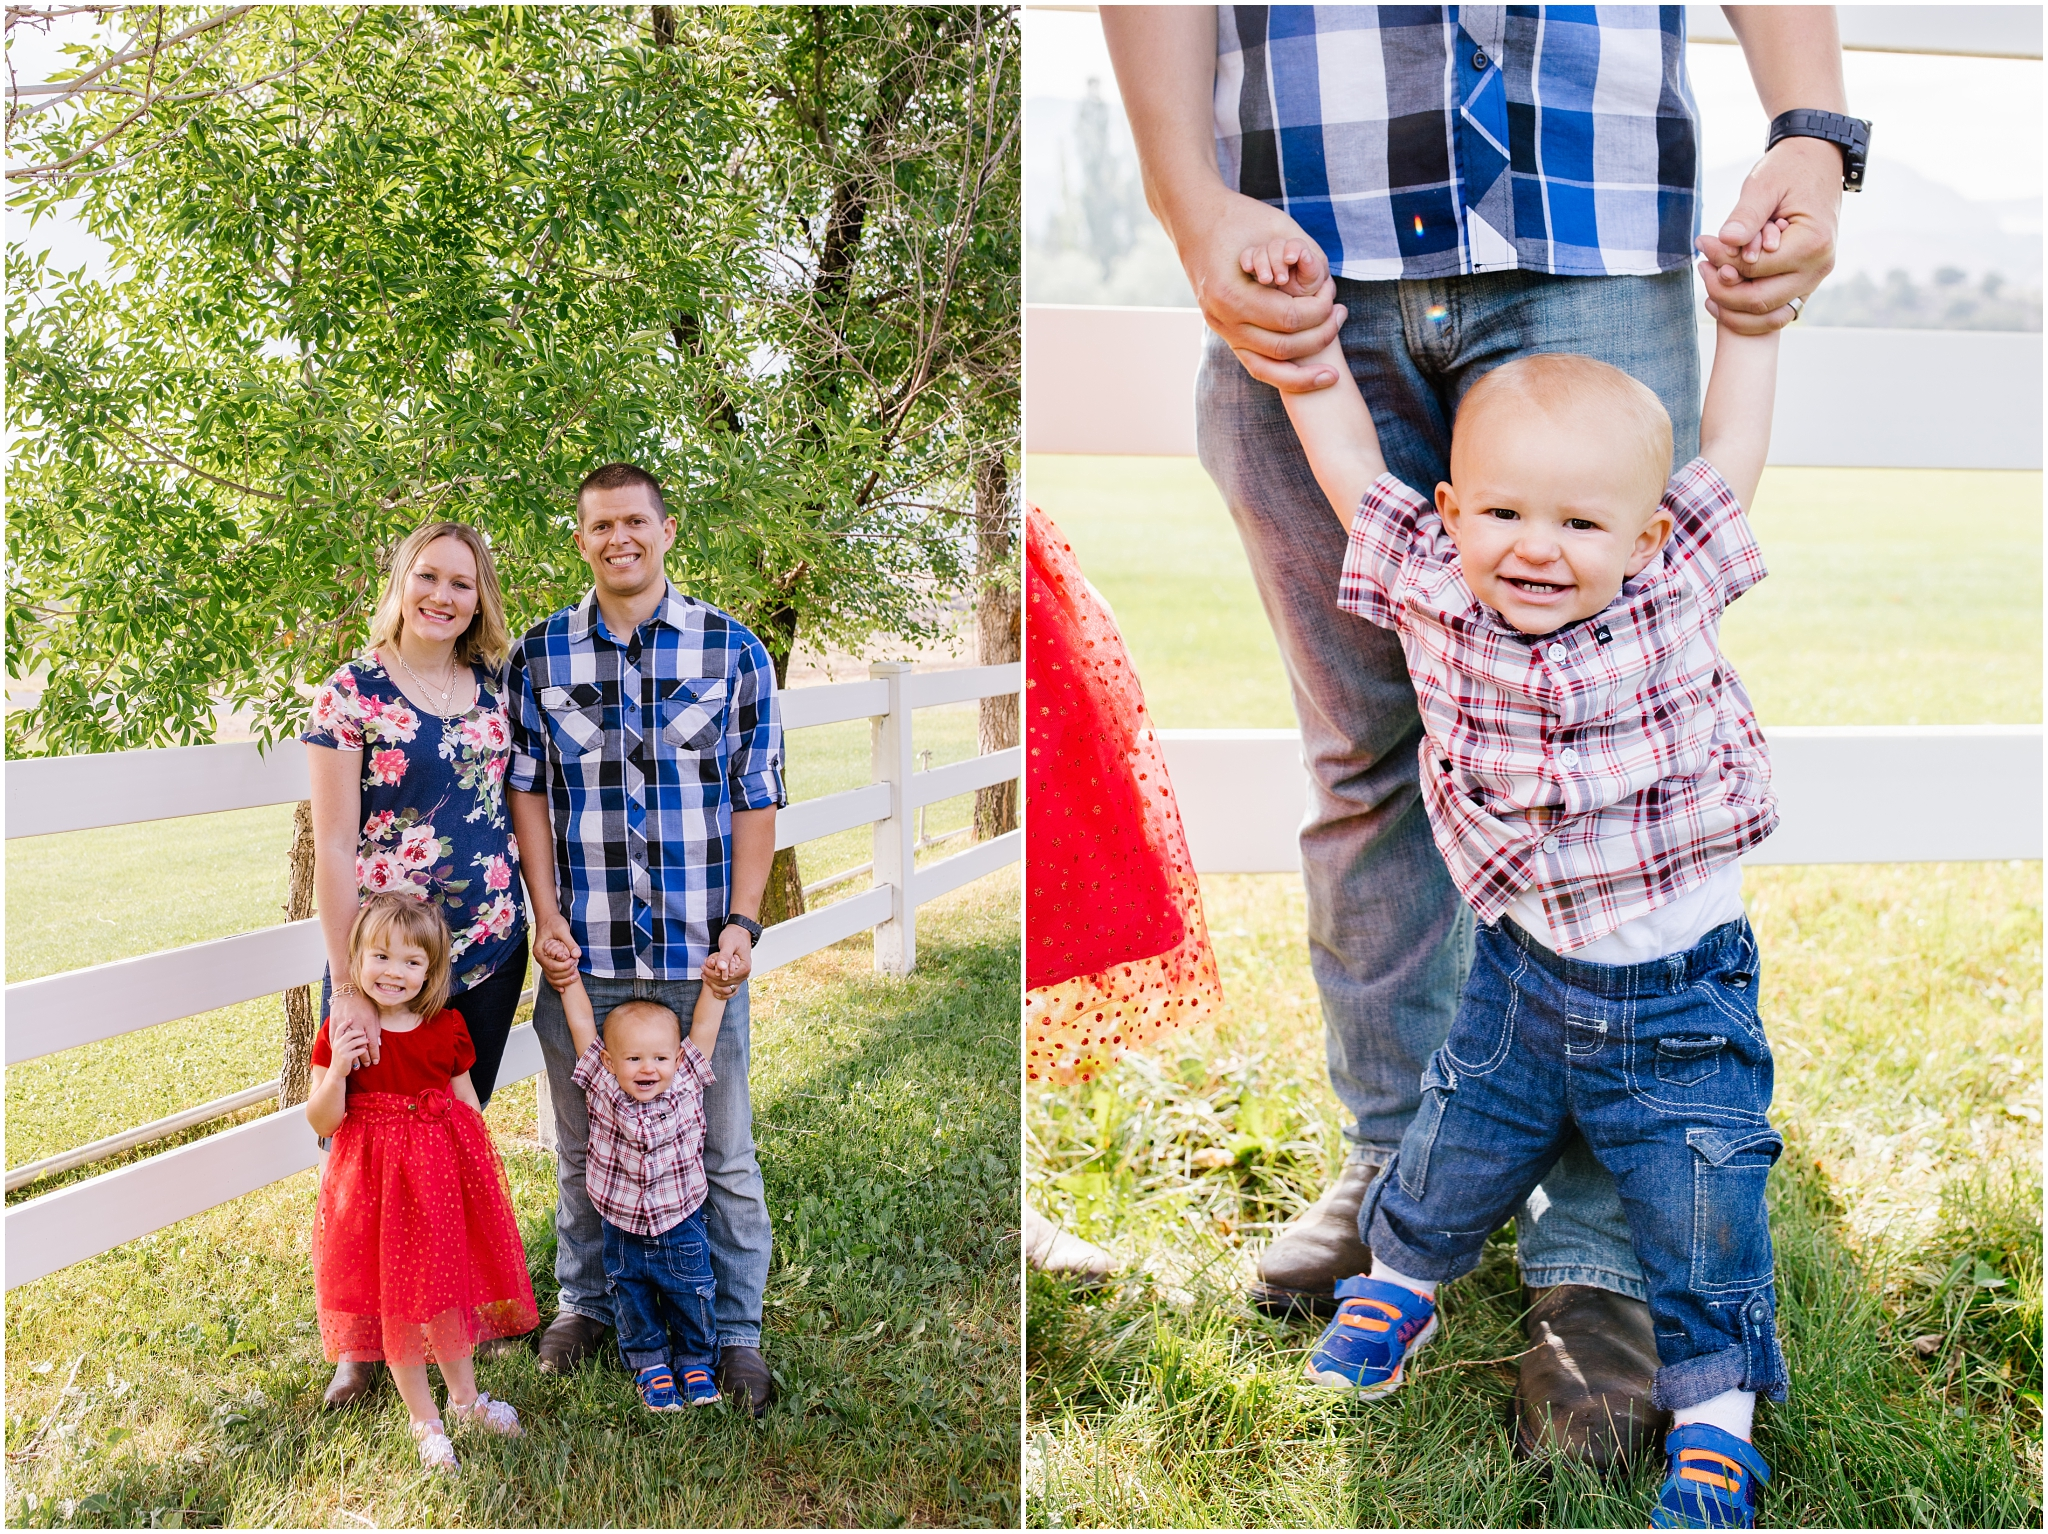 Brinkerhoff-60_Lizzie-B-Imagery-Utah-Family-Photographer-Central-Utah-Photographer-Utah-County-Extended-Family-Session.jpg